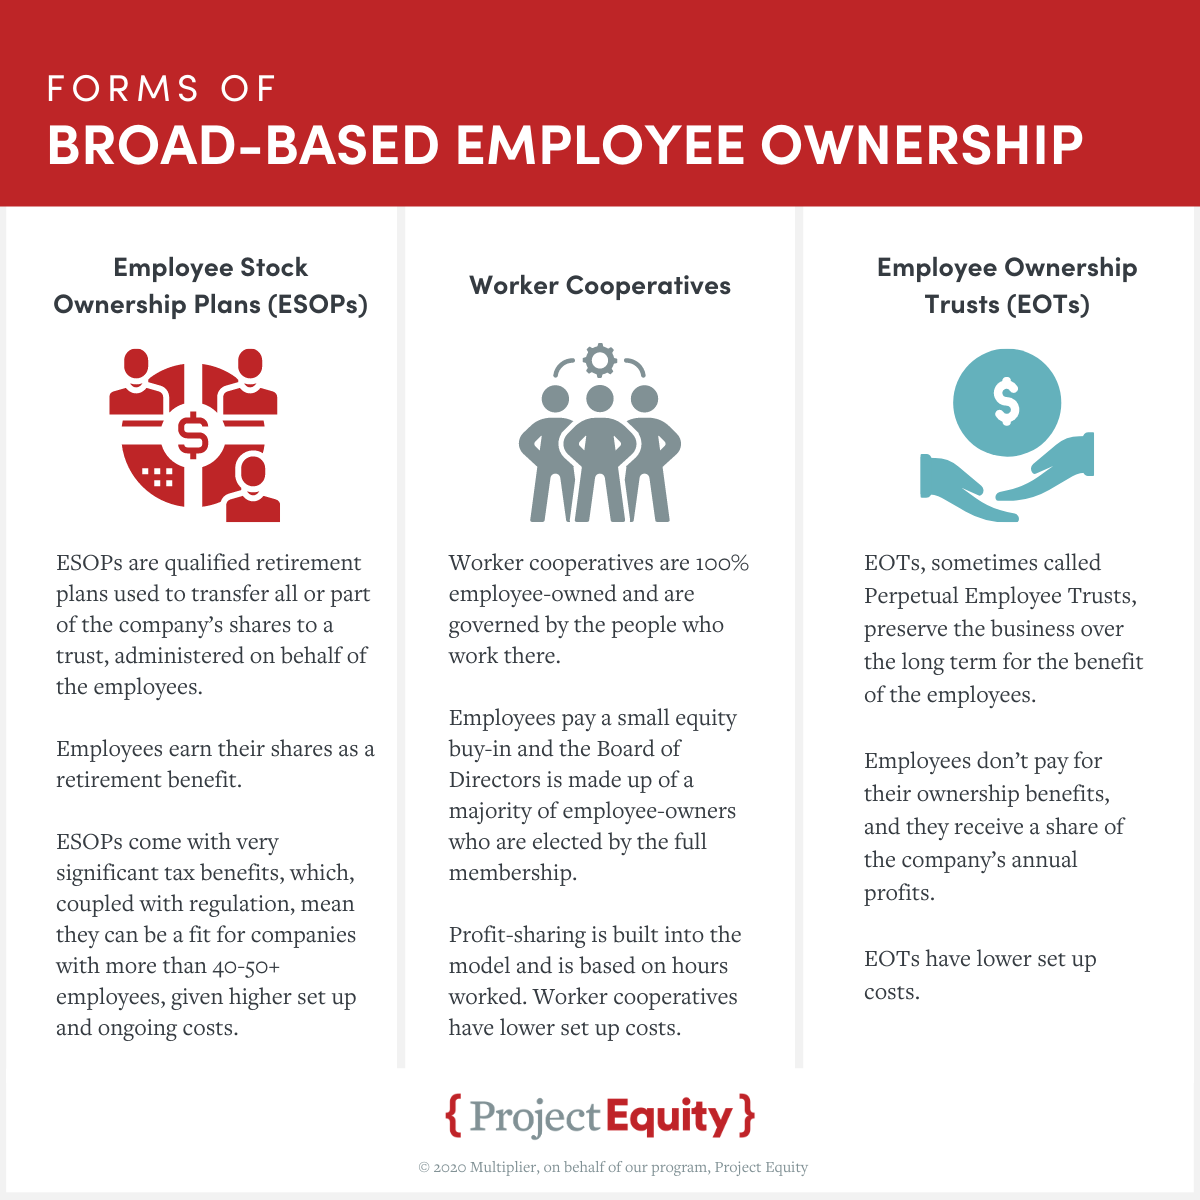 Project Equity infographic: Forms of Broad-Based Employee Ownership (ESOPs, Worker Cooperatives, Employee Ownership Trusts)